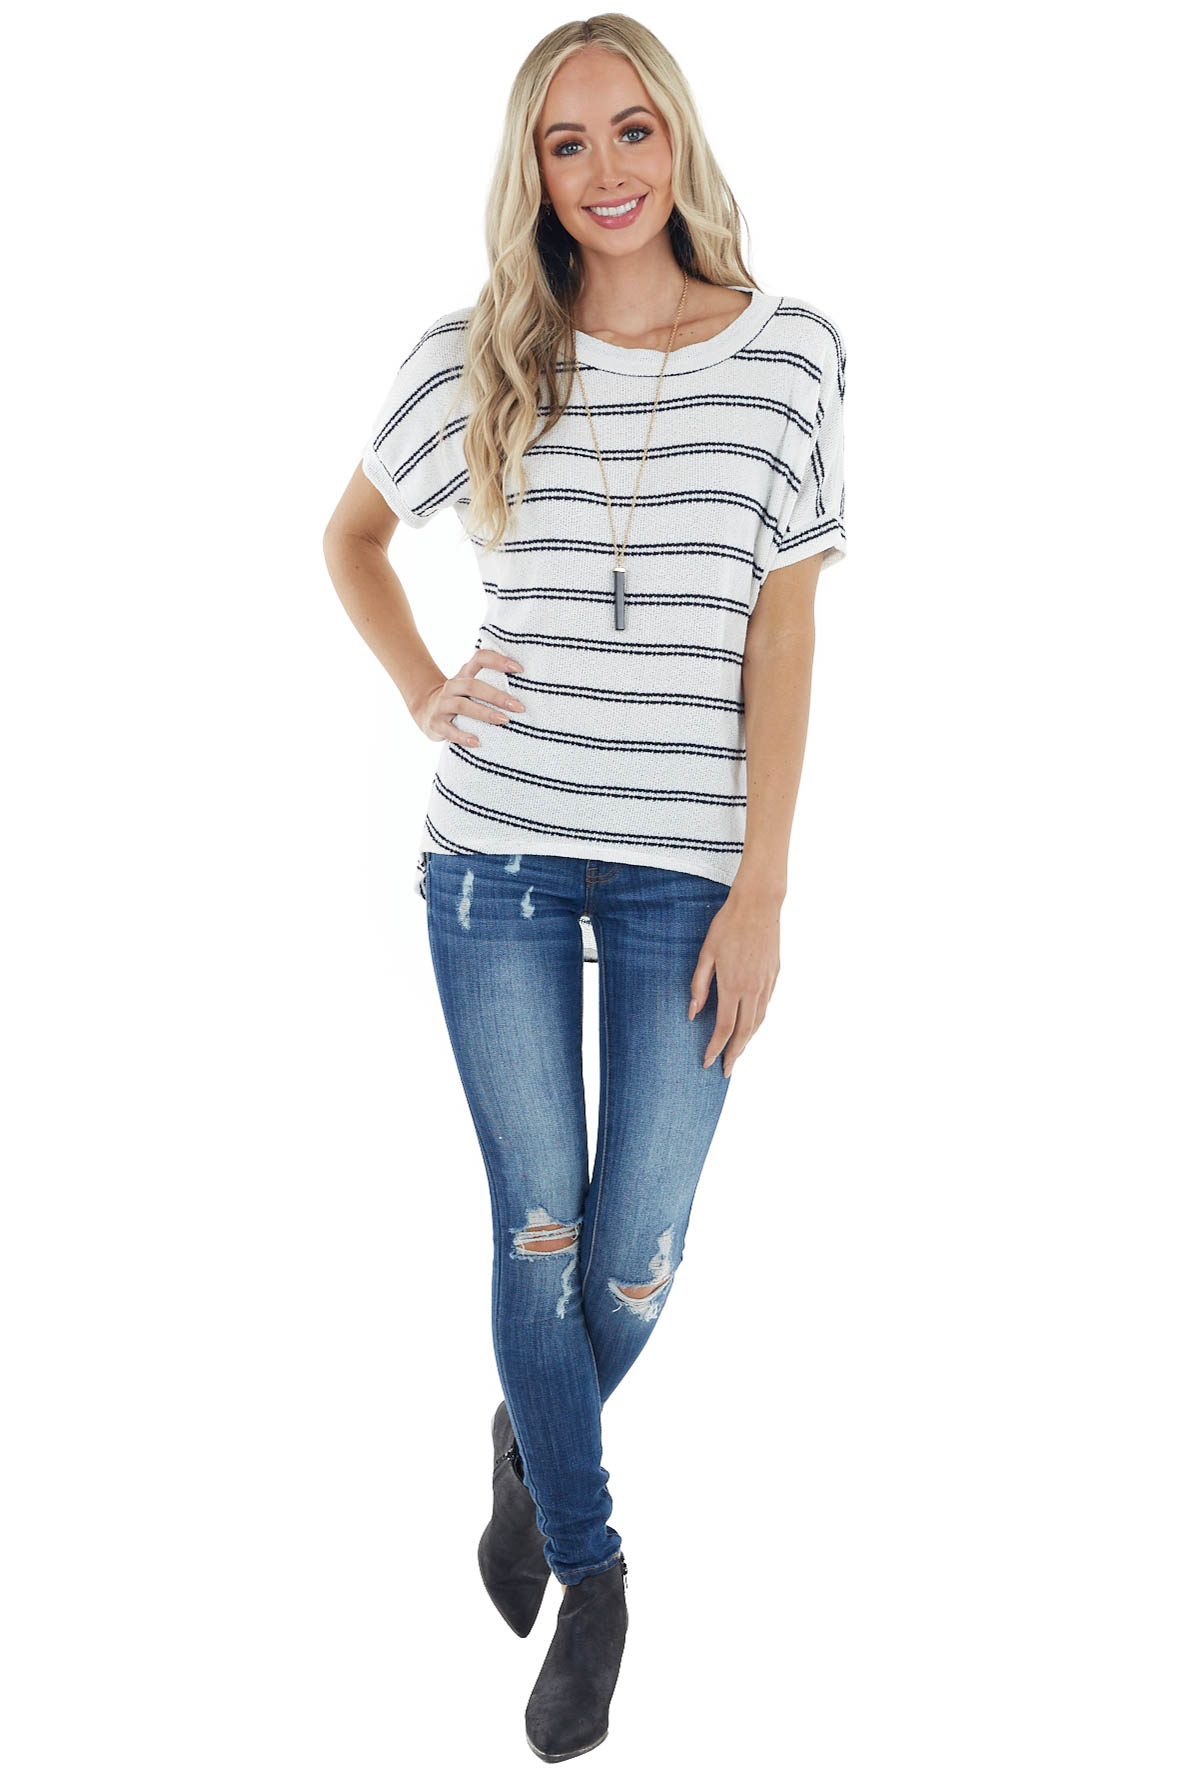 Ivory and Navy Striped Knit Top with Short Dolman Sleeves